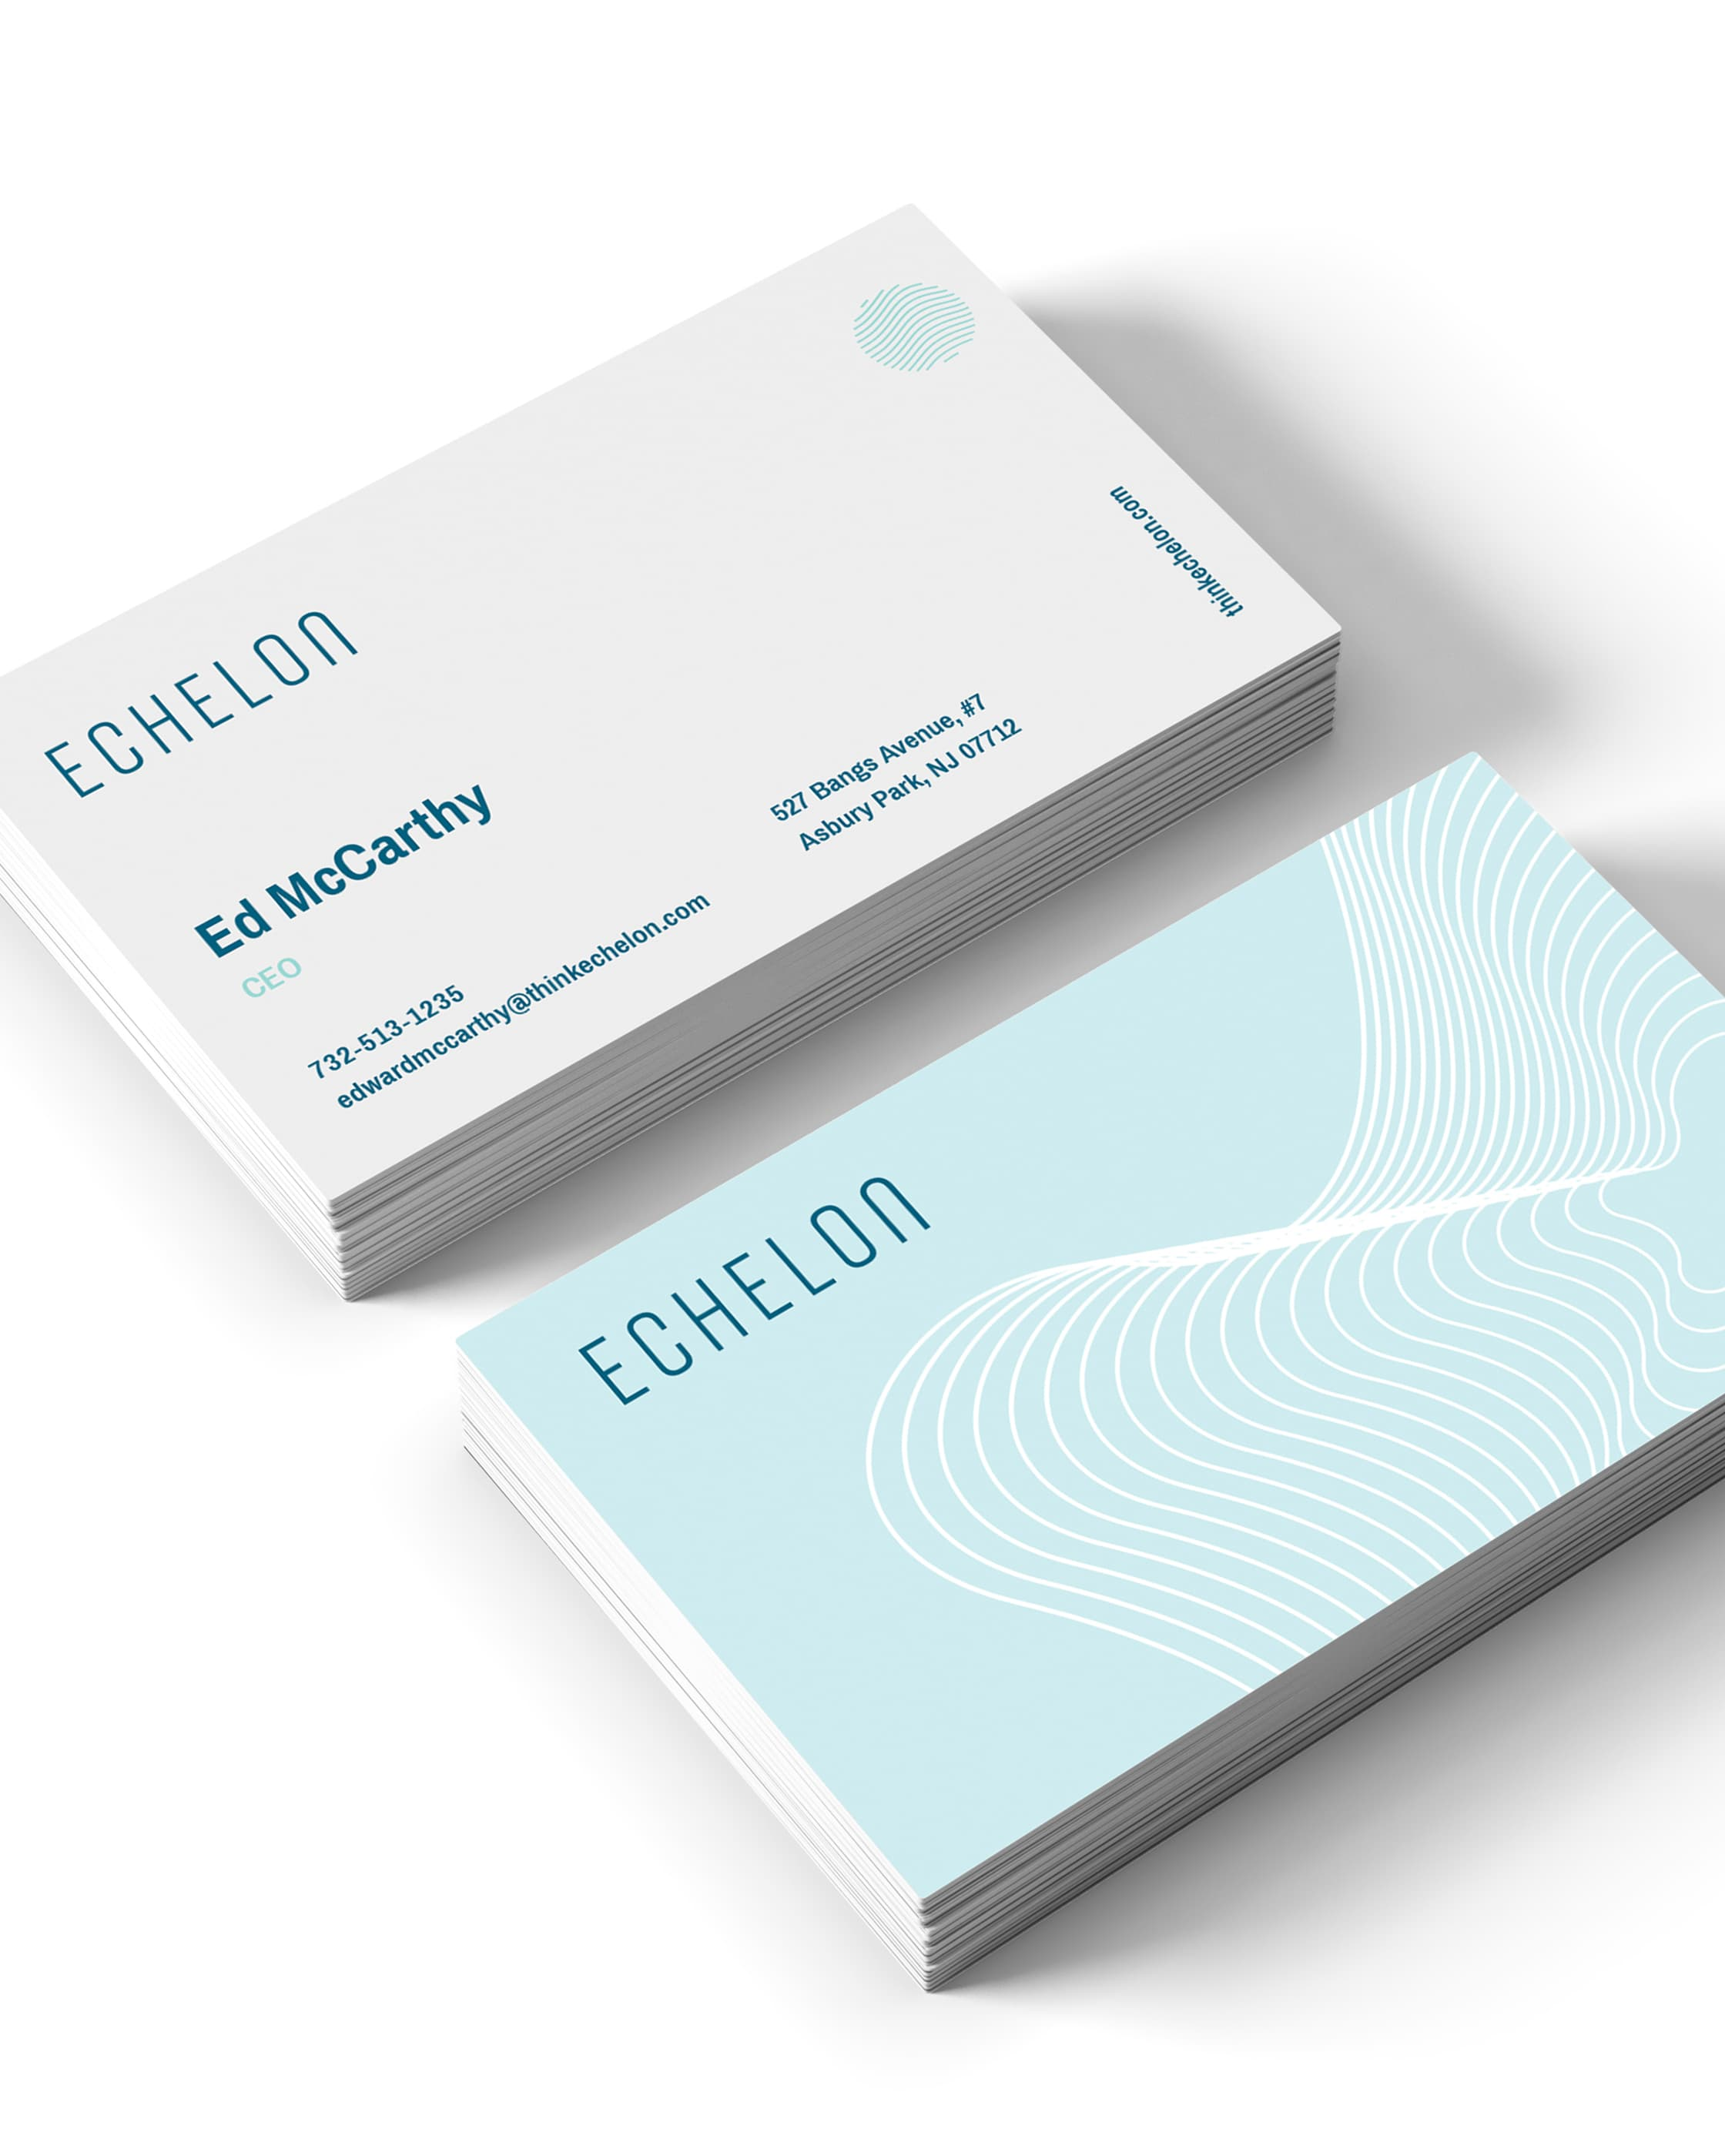 Echelon business cards